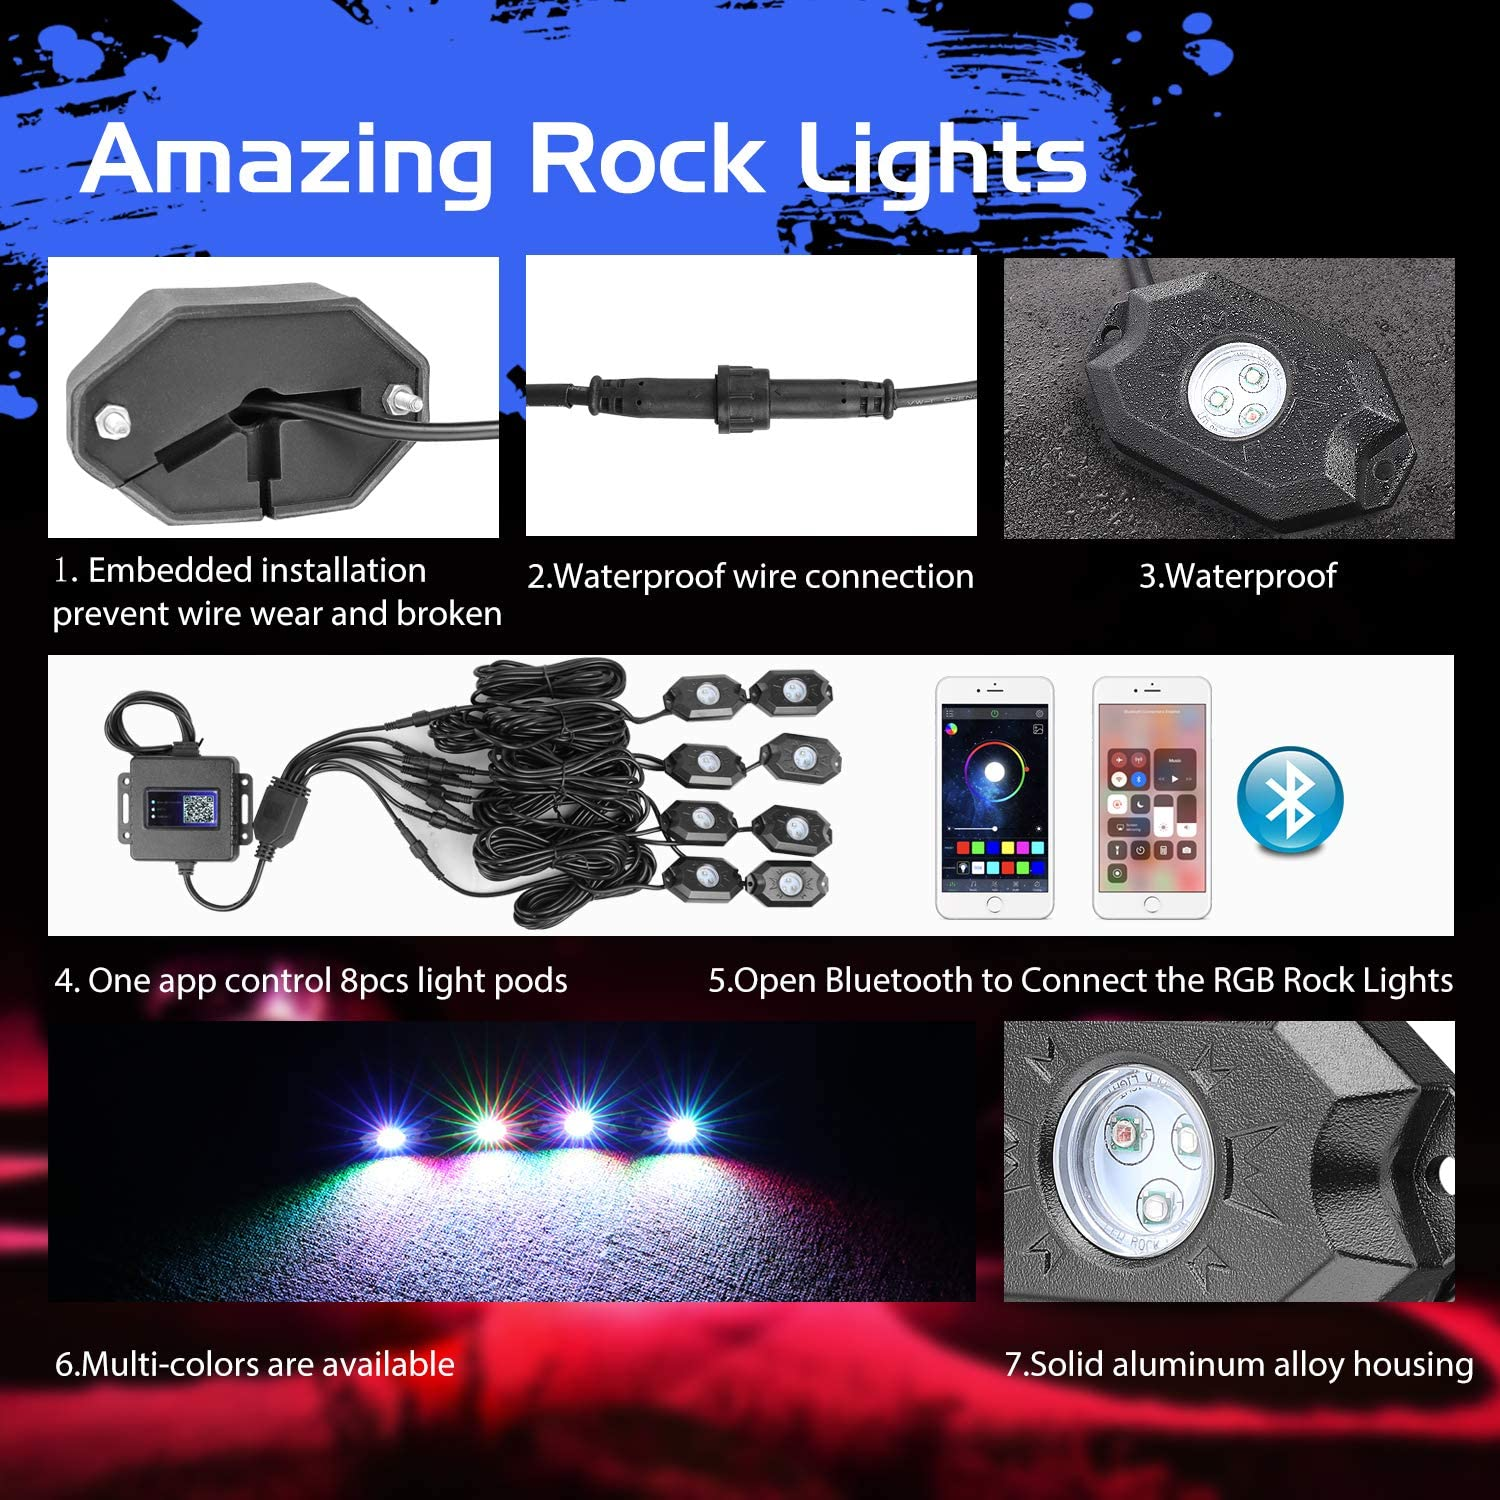 Auto Power Plus Neon Led Lights Waterproof Bluetooth Strobe Lights Underglow RGB led lights for Truck SUV ATV Boat Motorcycle Off Road Jeep 8 Pods RGB LED Rock Light Kit